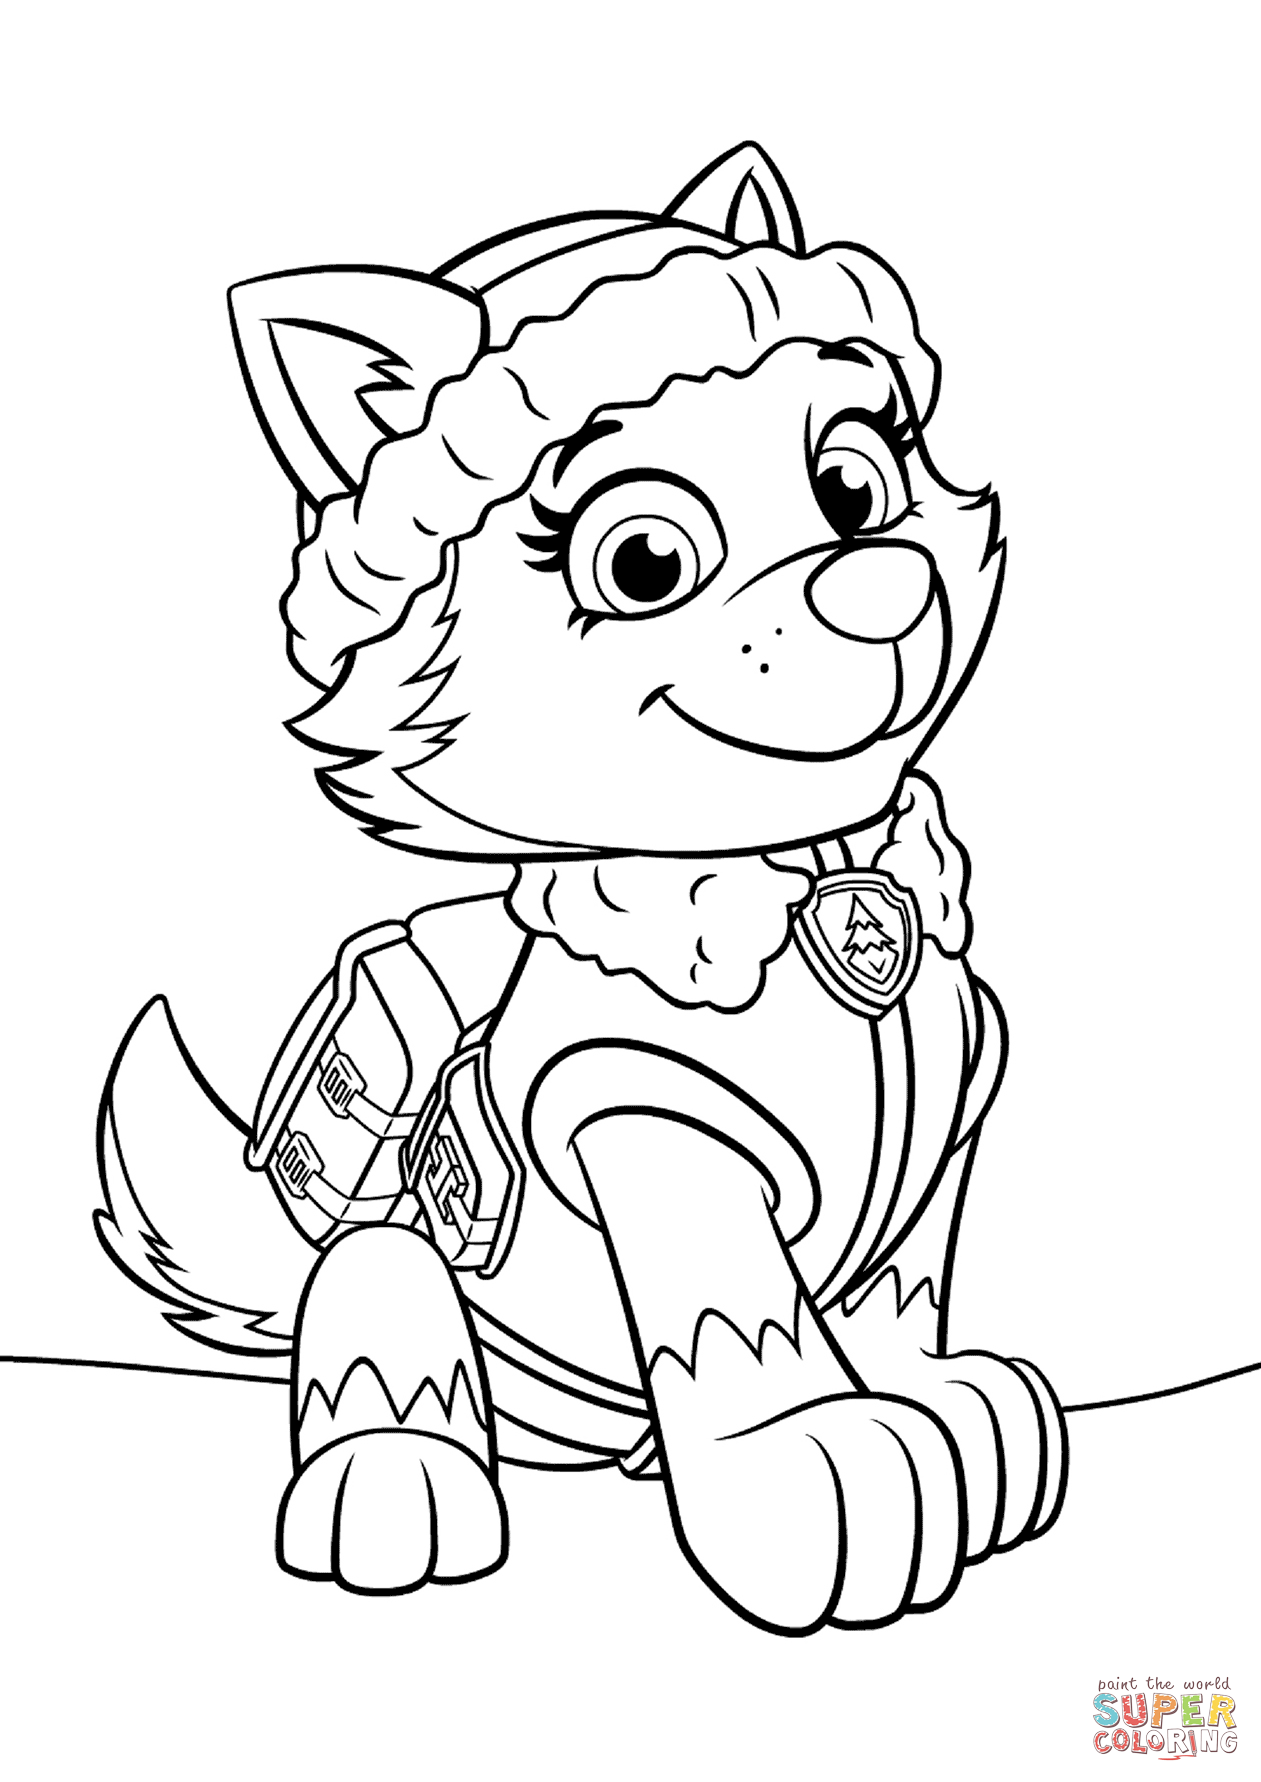 everest paw patrol coloring 4 everest coloring page coworksheets paw everest patrol coloring